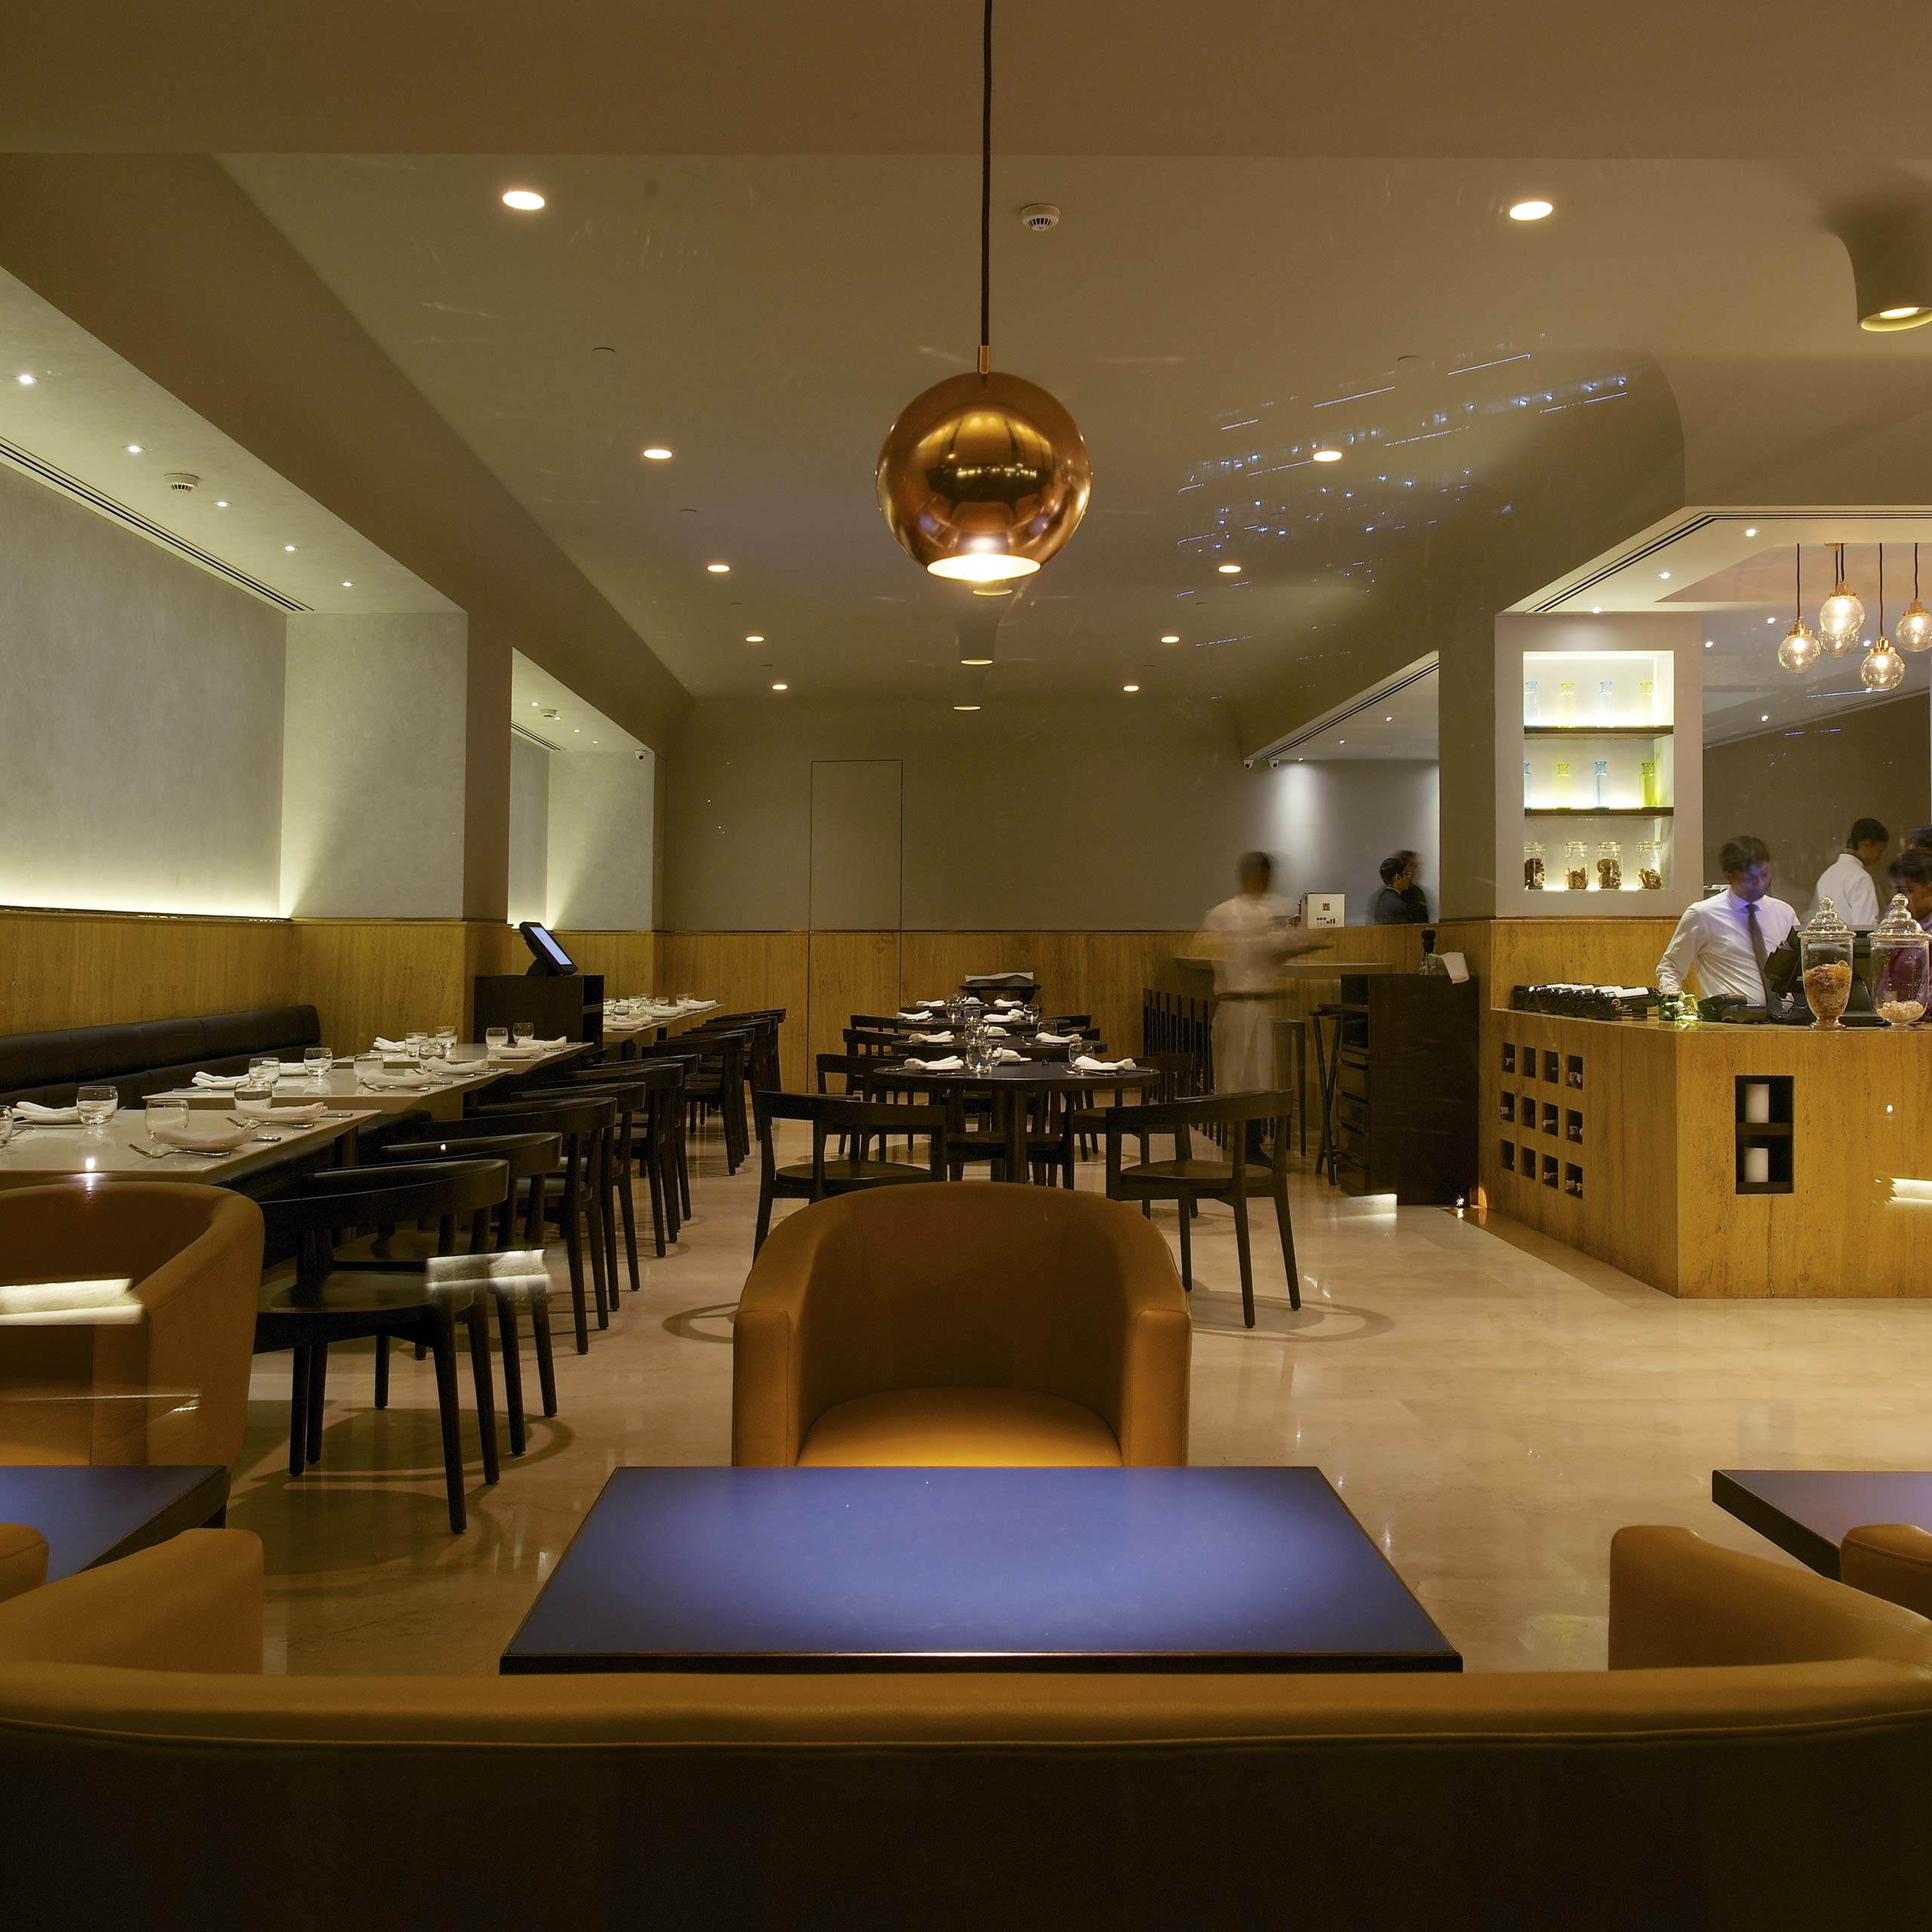 Restaurant interior seating area